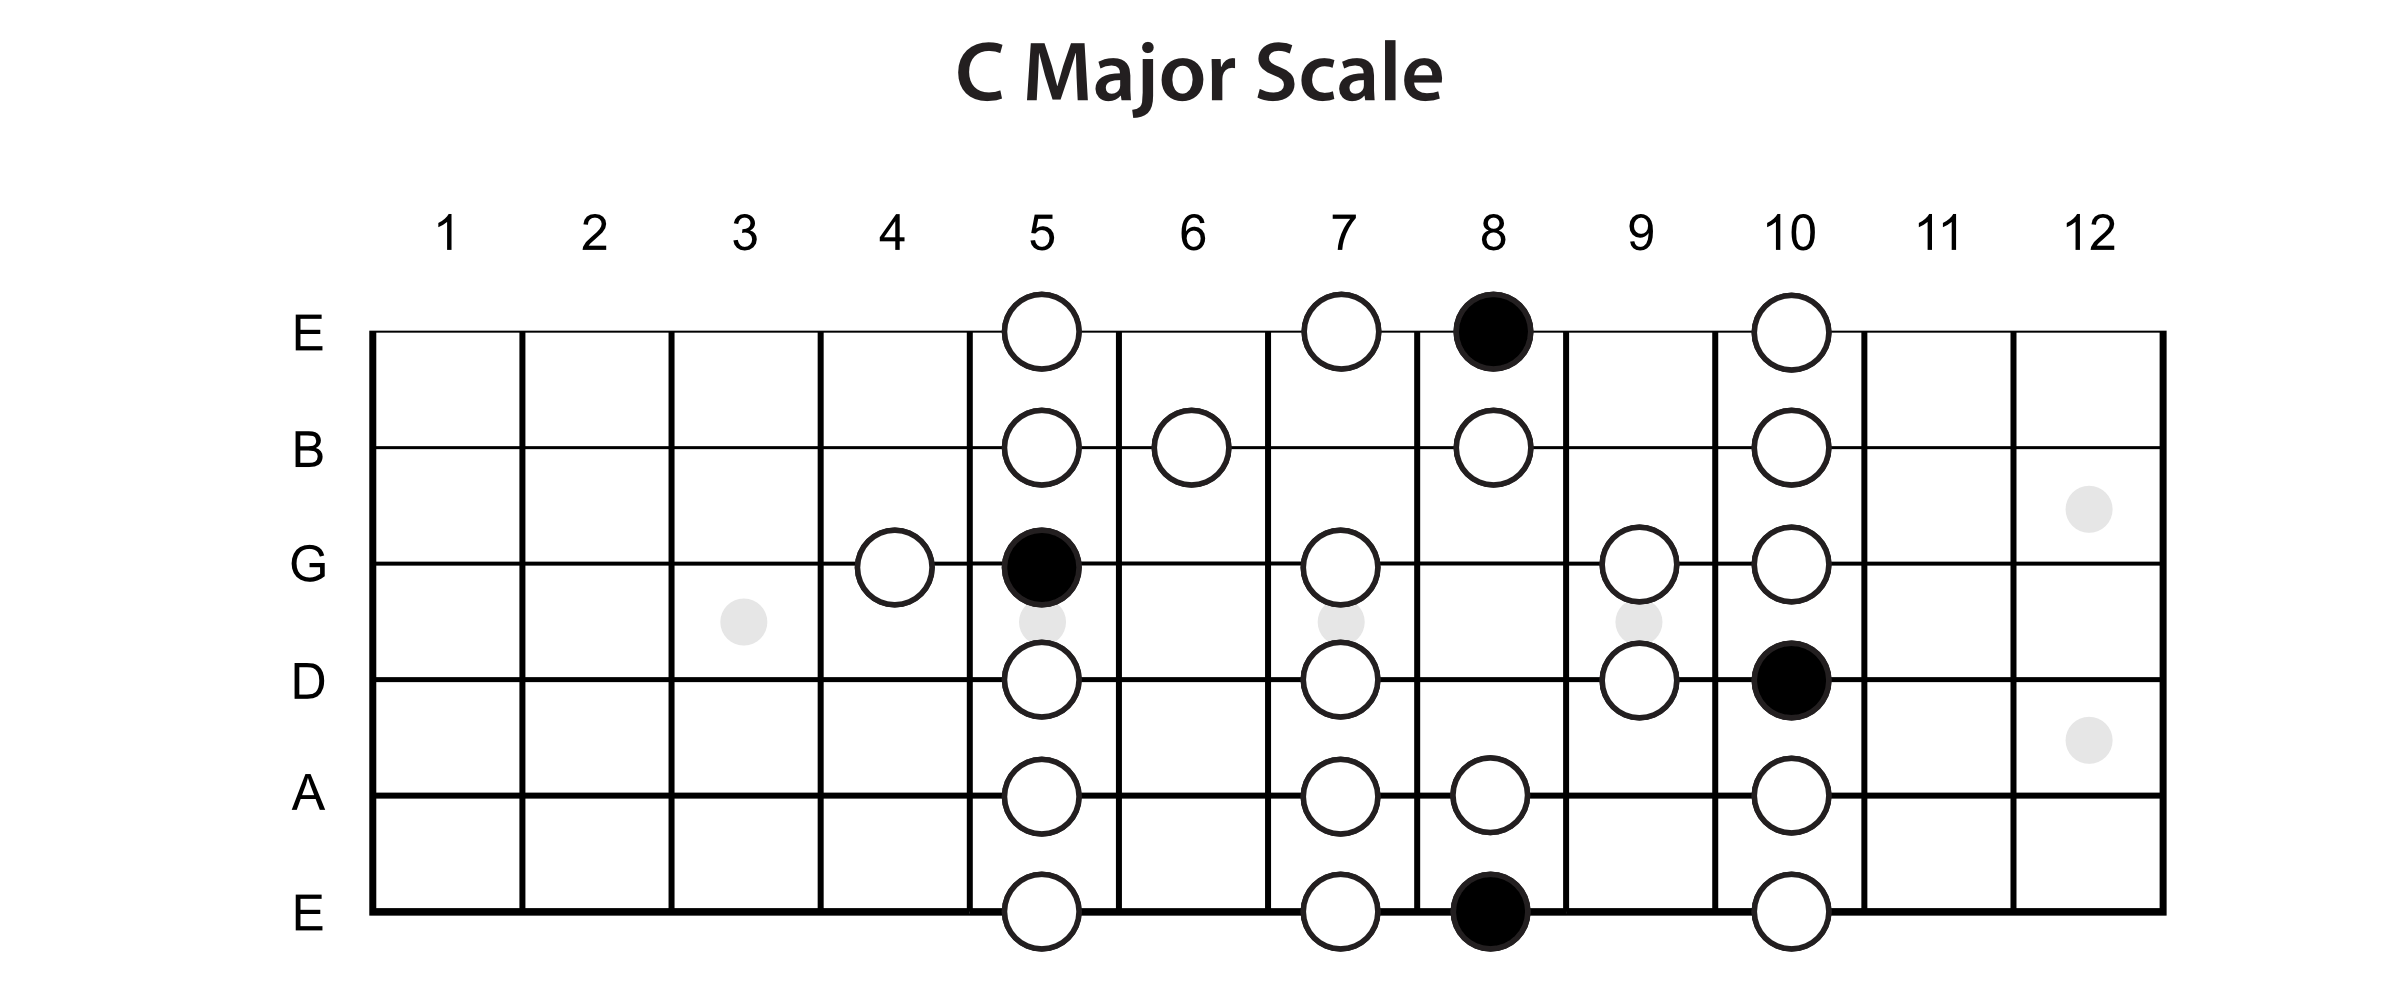 Major Scale Horizontal View